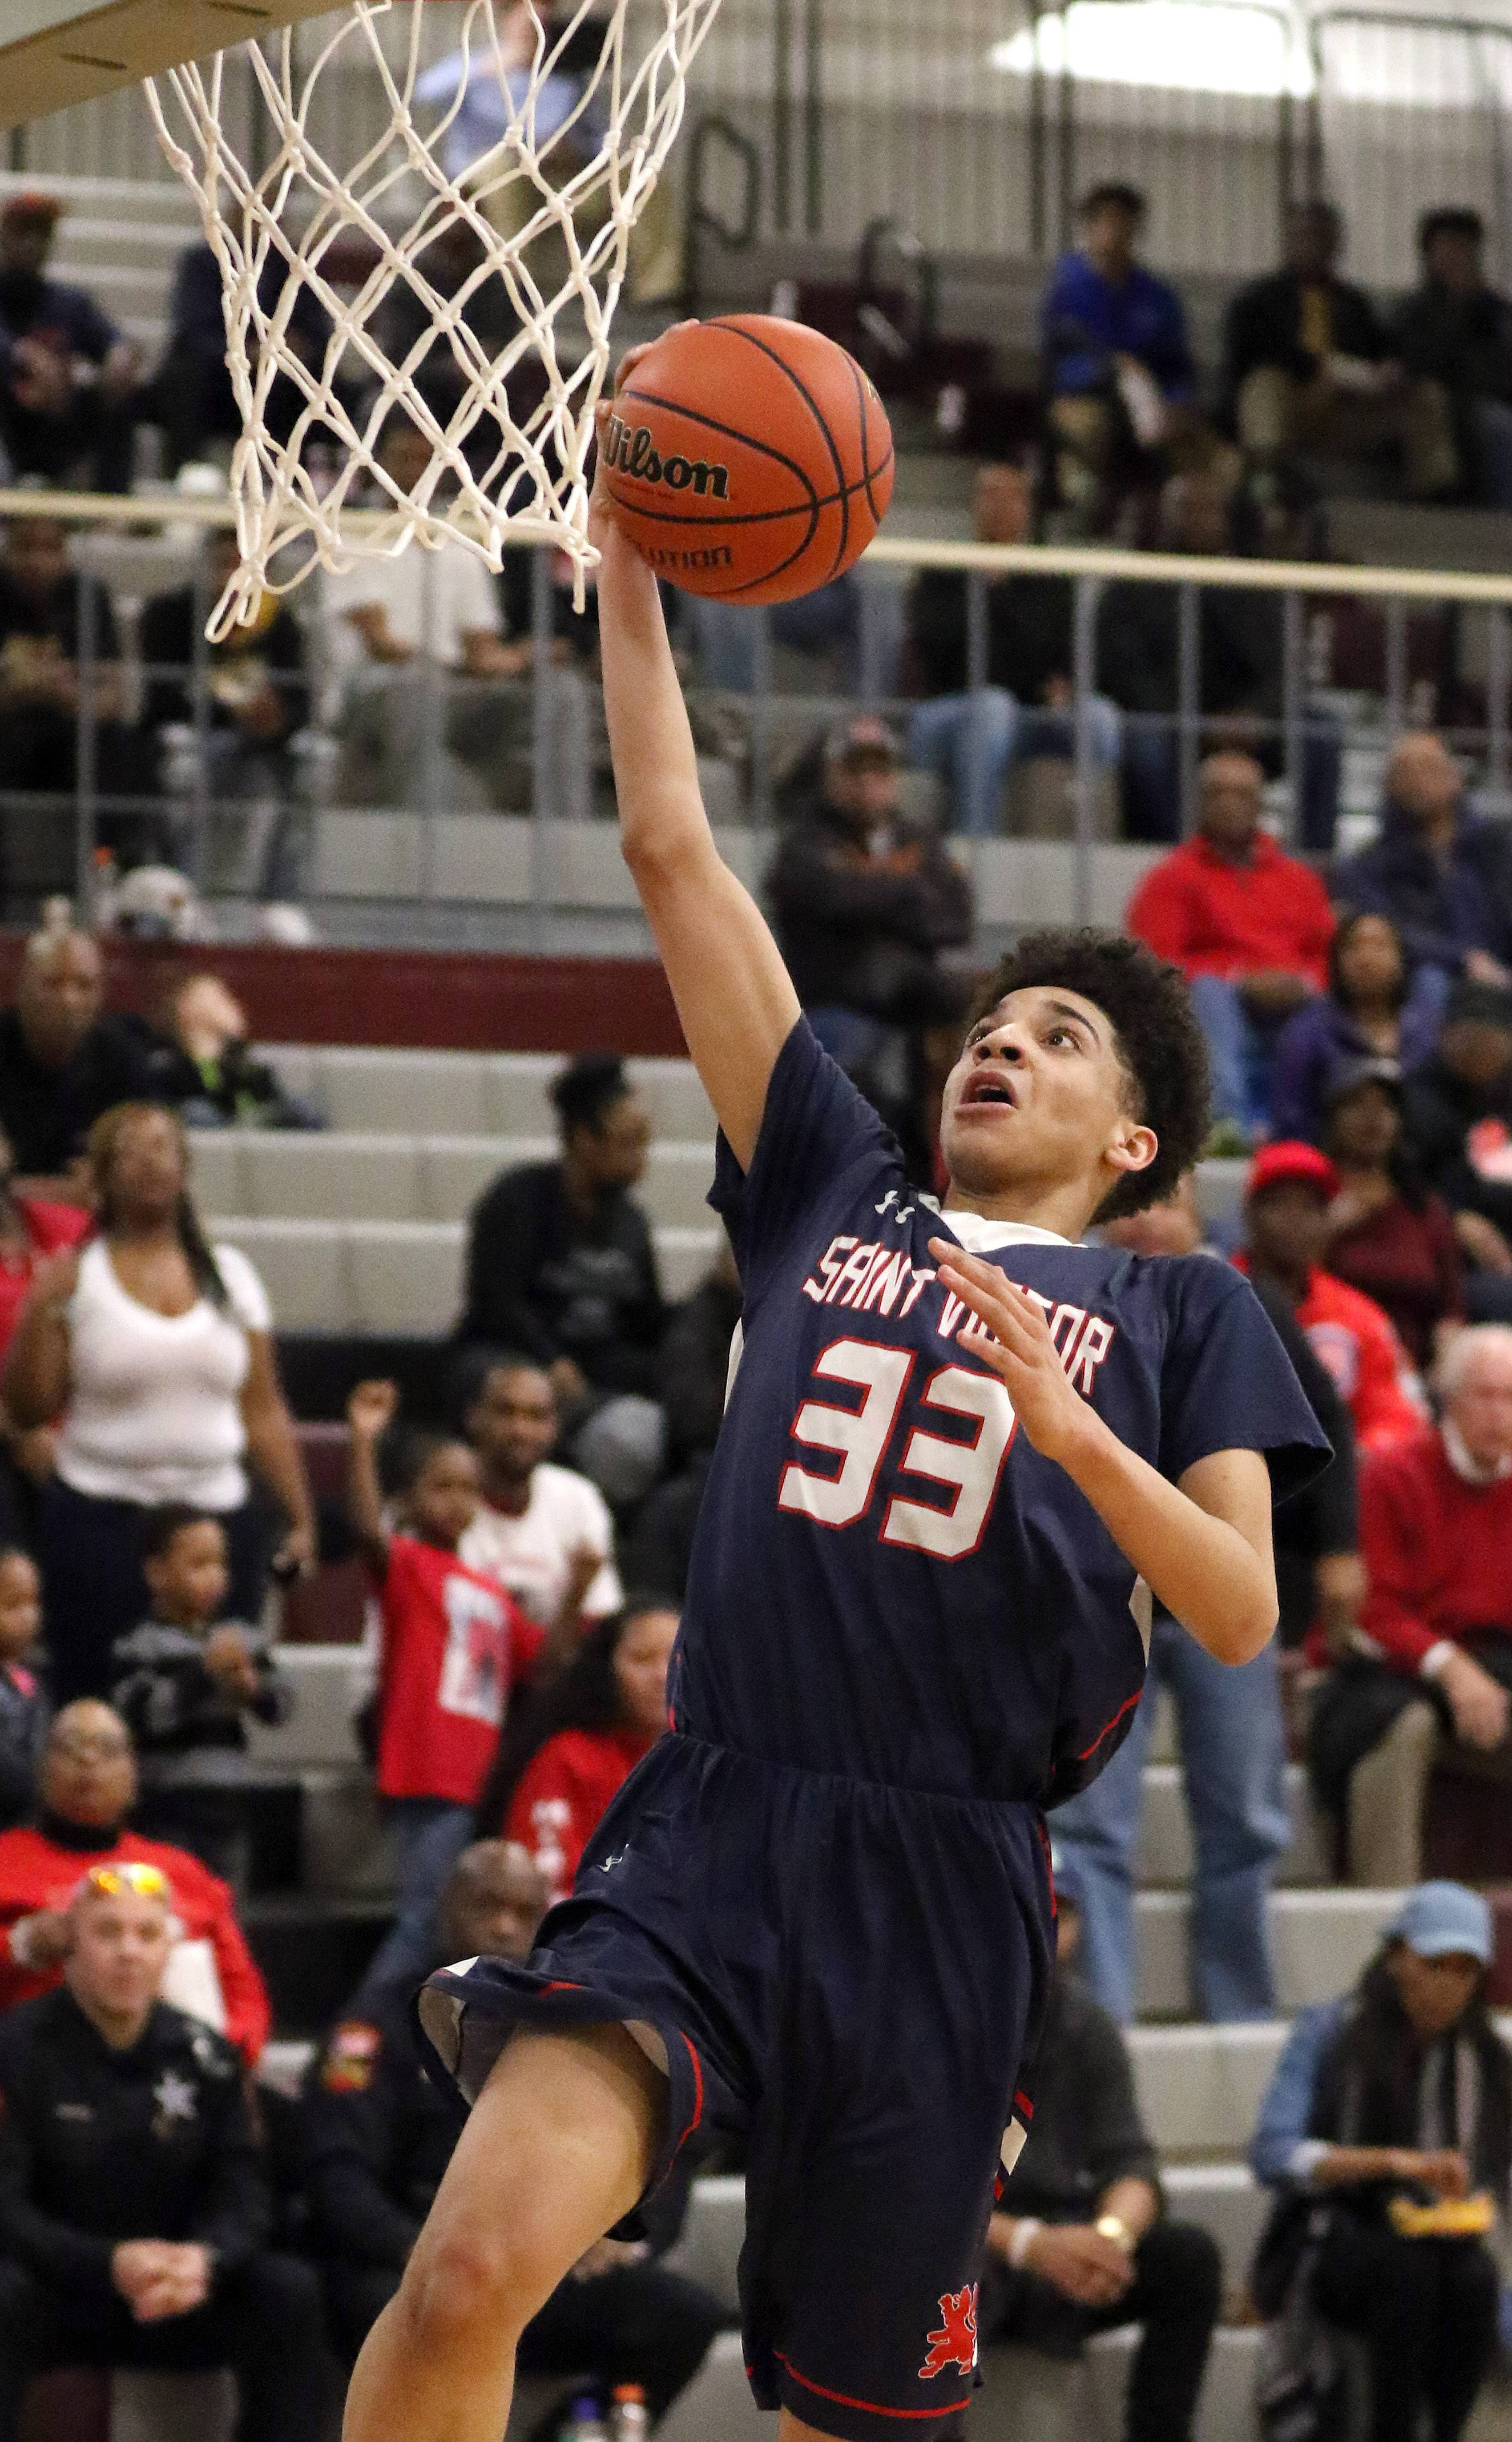 St. Viator's Jeremiah Hernandez drives in for a layup in the Class 3A sectional final at Antioch on Friday.